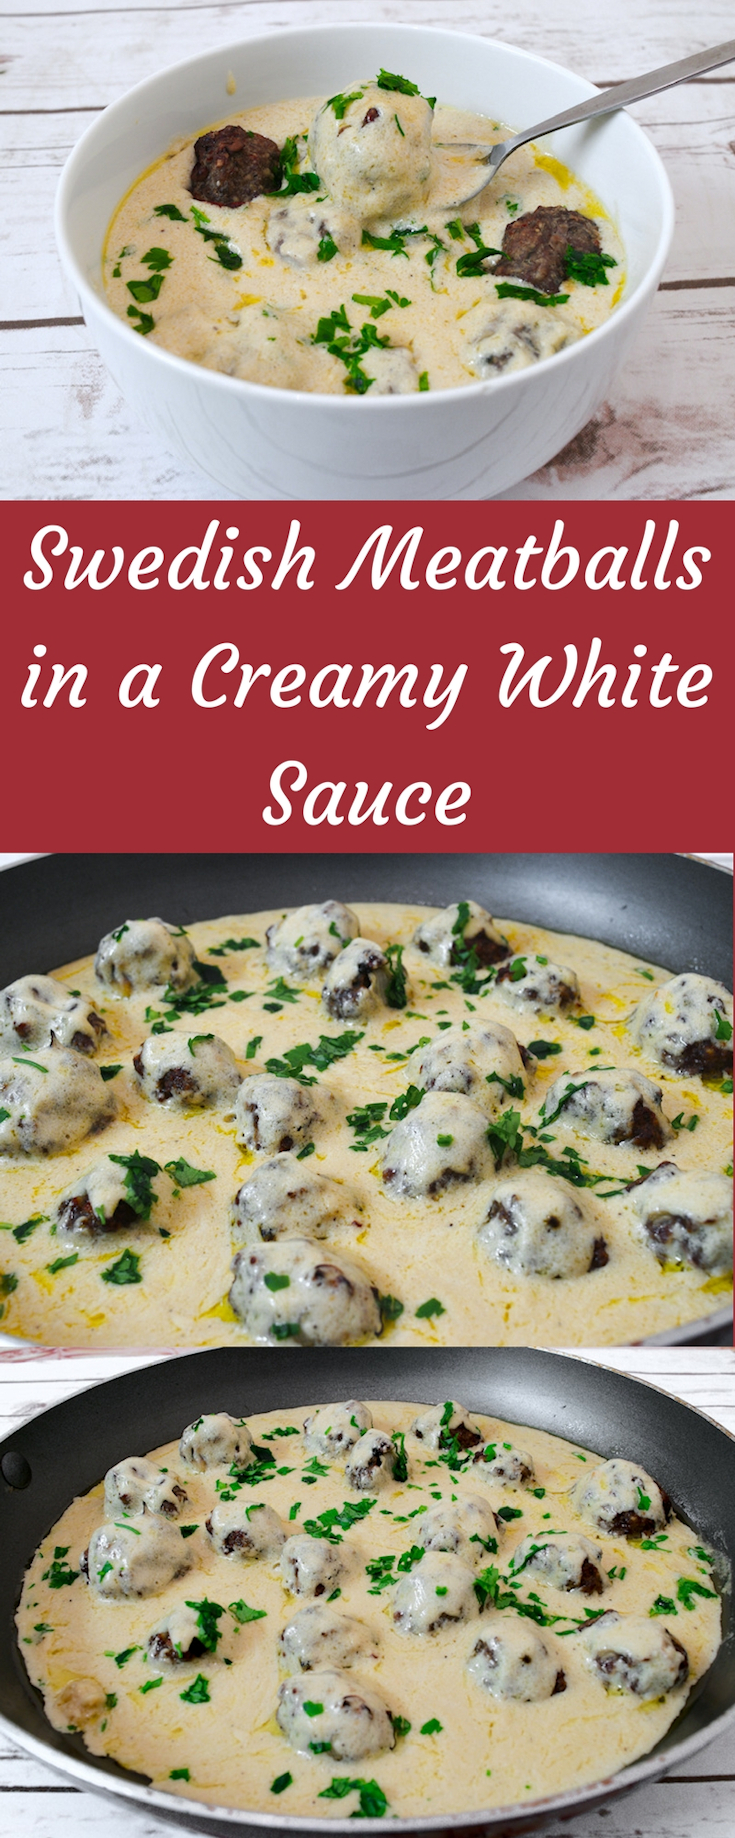 Swedish Meatballs in a Creamy White Sauce